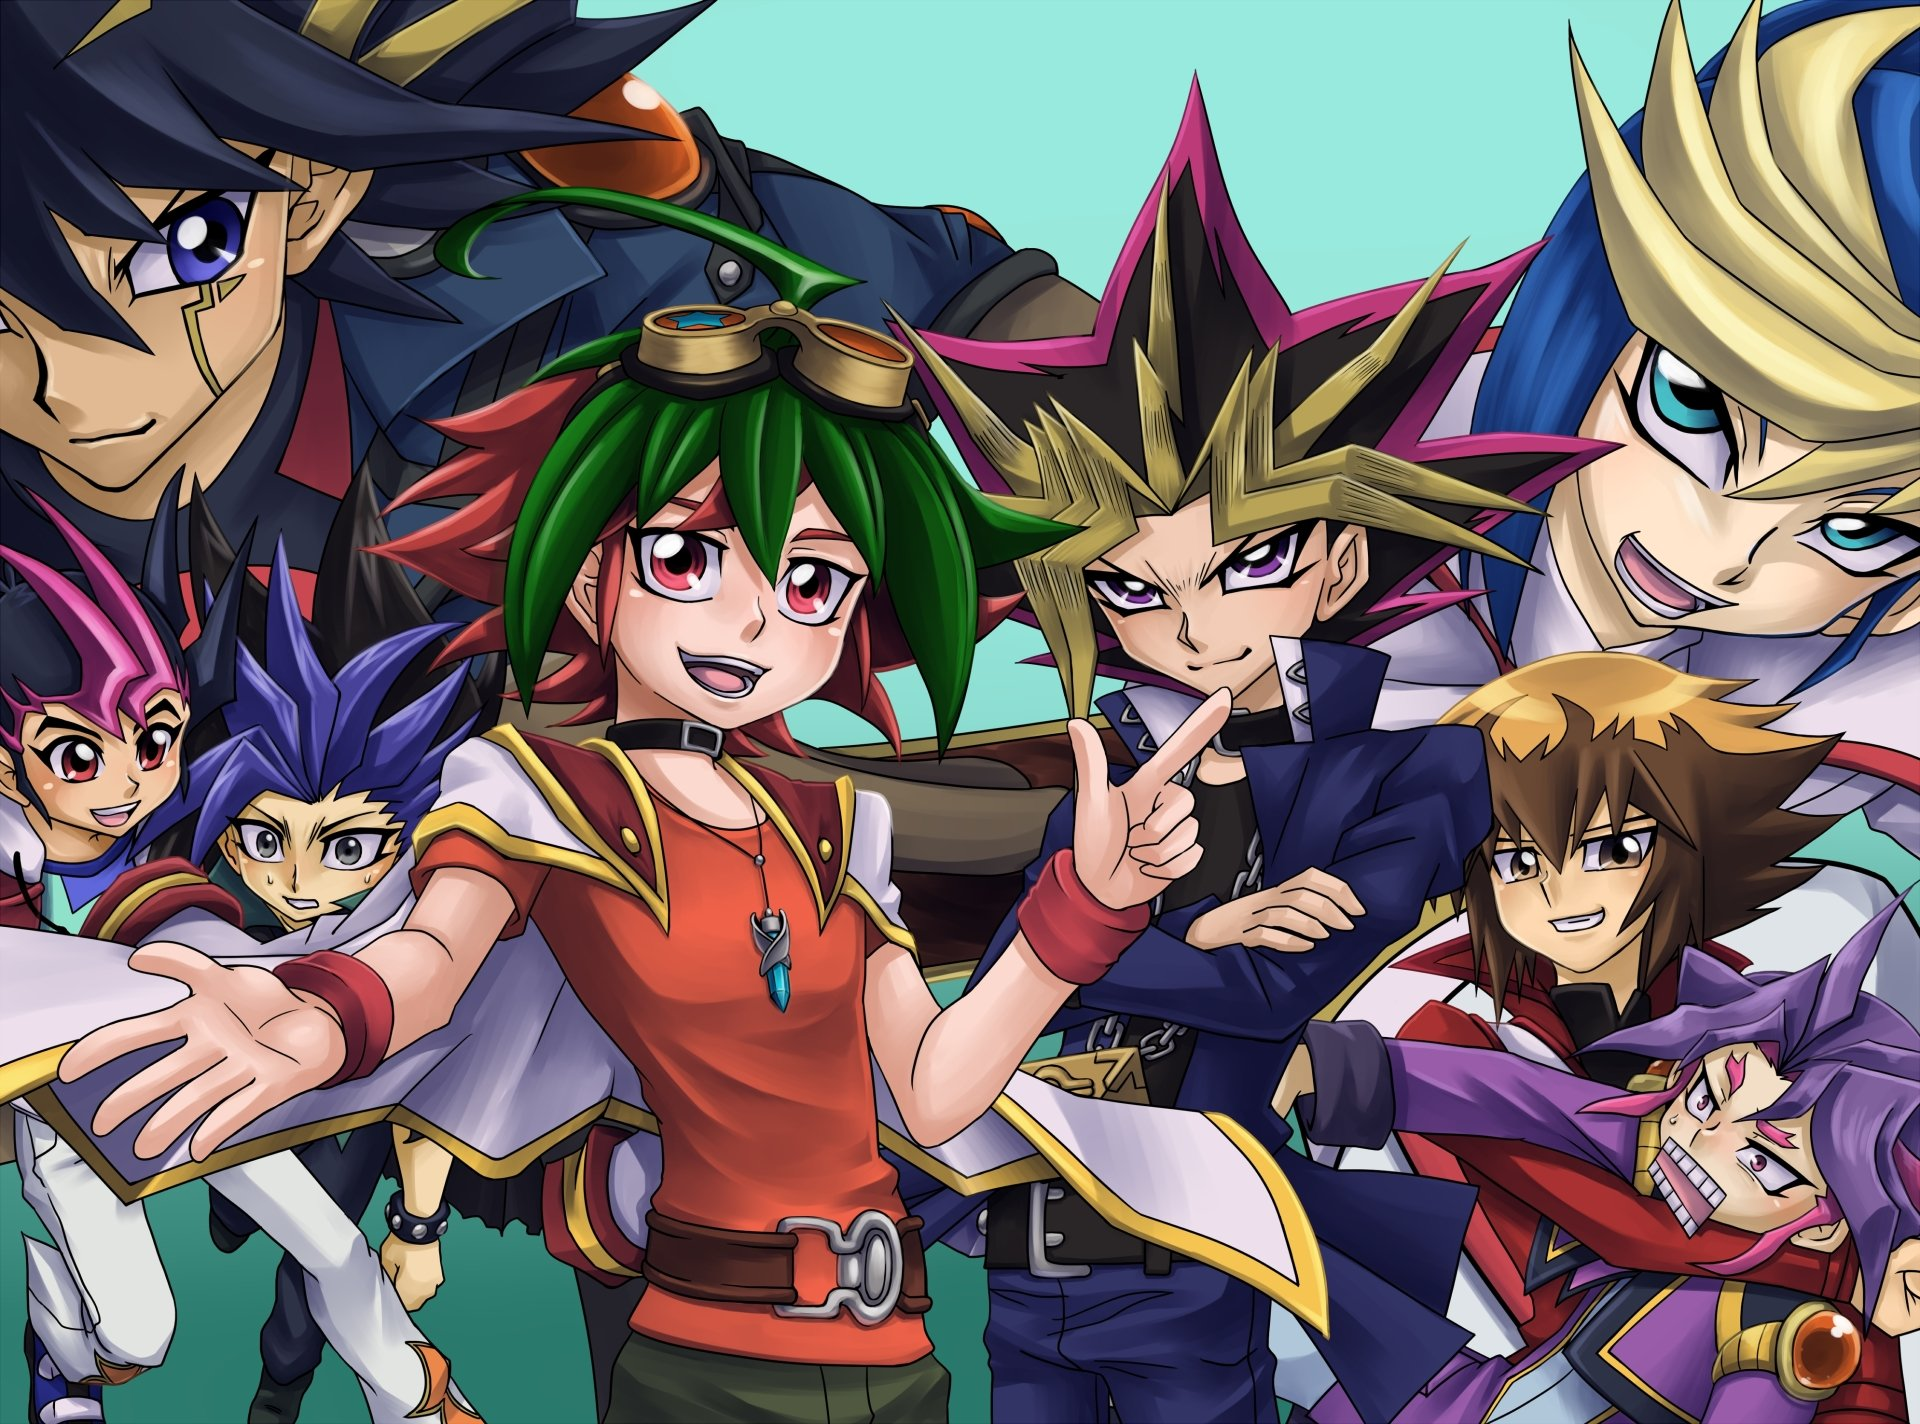 yugioh zexal 4k ultra hd wallpaper and background image